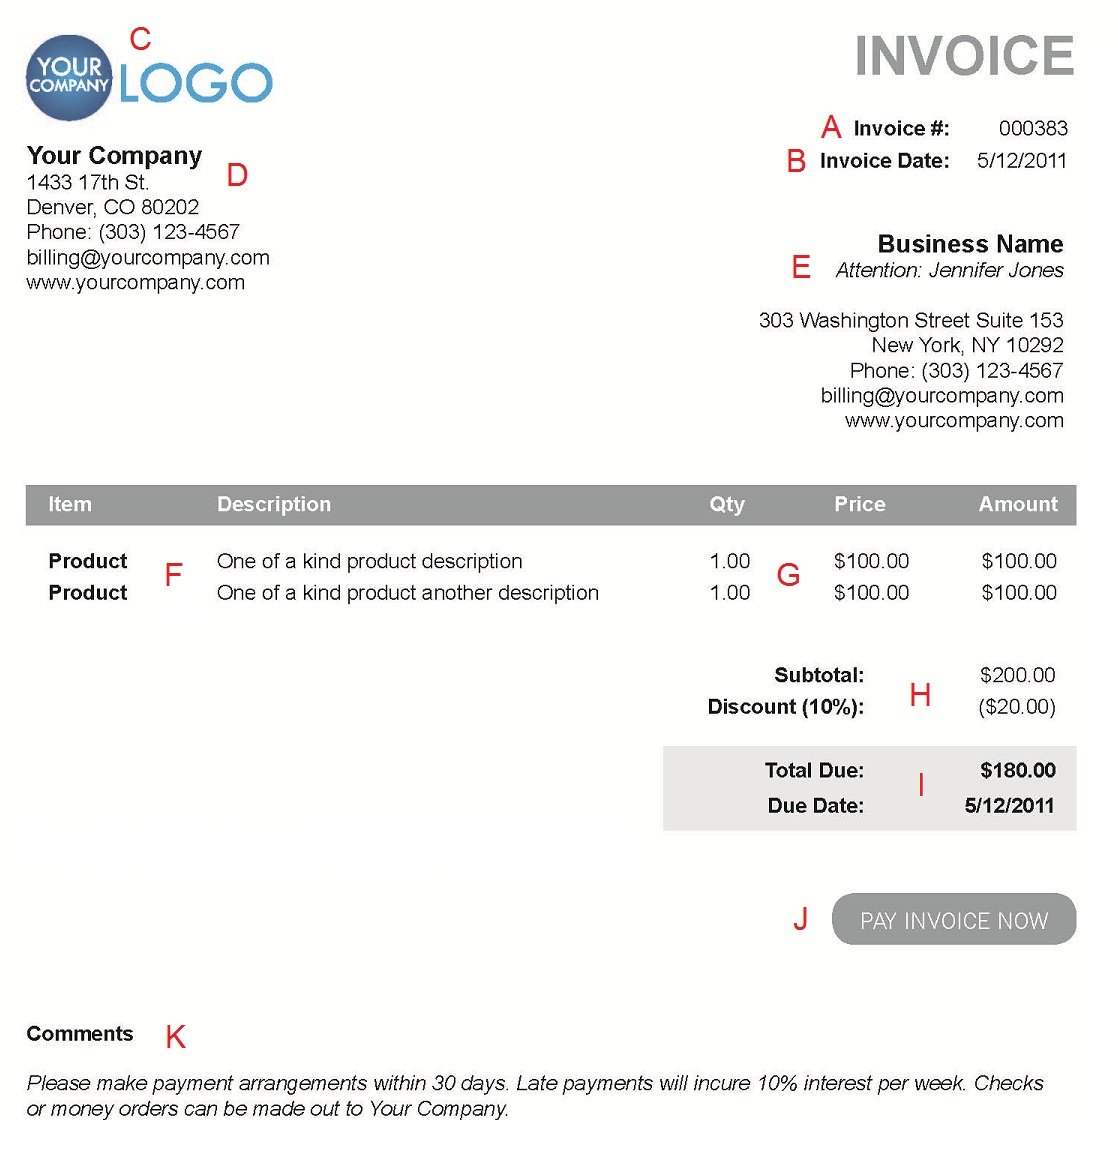 Usdgus  Marvelous The  Different Sections Of An Electronic Payment Invoice With Inspiring A  With Beauteous Trading Receipts Also Advance Payment Receipt In Addition Grocery Store Receipt Advertising And Rice Pudding Receipt As Well As Definition Of Receipts In Accounting Additionally Receipt Pdf Template From Paysimplecom With Usdgus  Inspiring The  Different Sections Of An Electronic Payment Invoice With Beauteous A  And Marvelous Trading Receipts Also Advance Payment Receipt In Addition Grocery Store Receipt Advertising From Paysimplecom